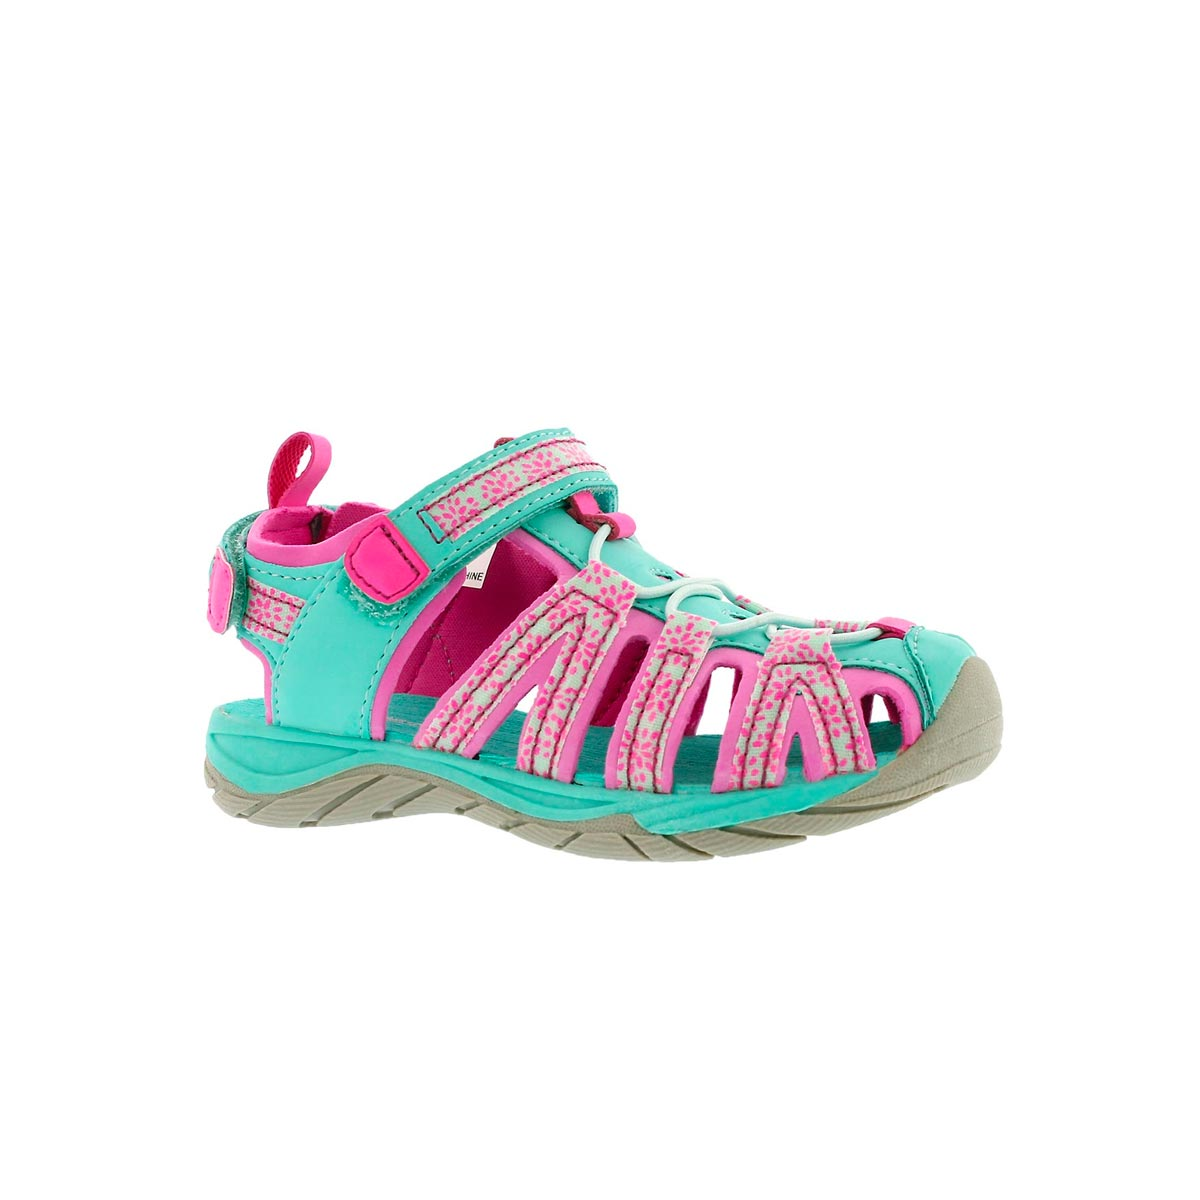 Infants' EOWYN 2 turquoise/pink closed toe sandals